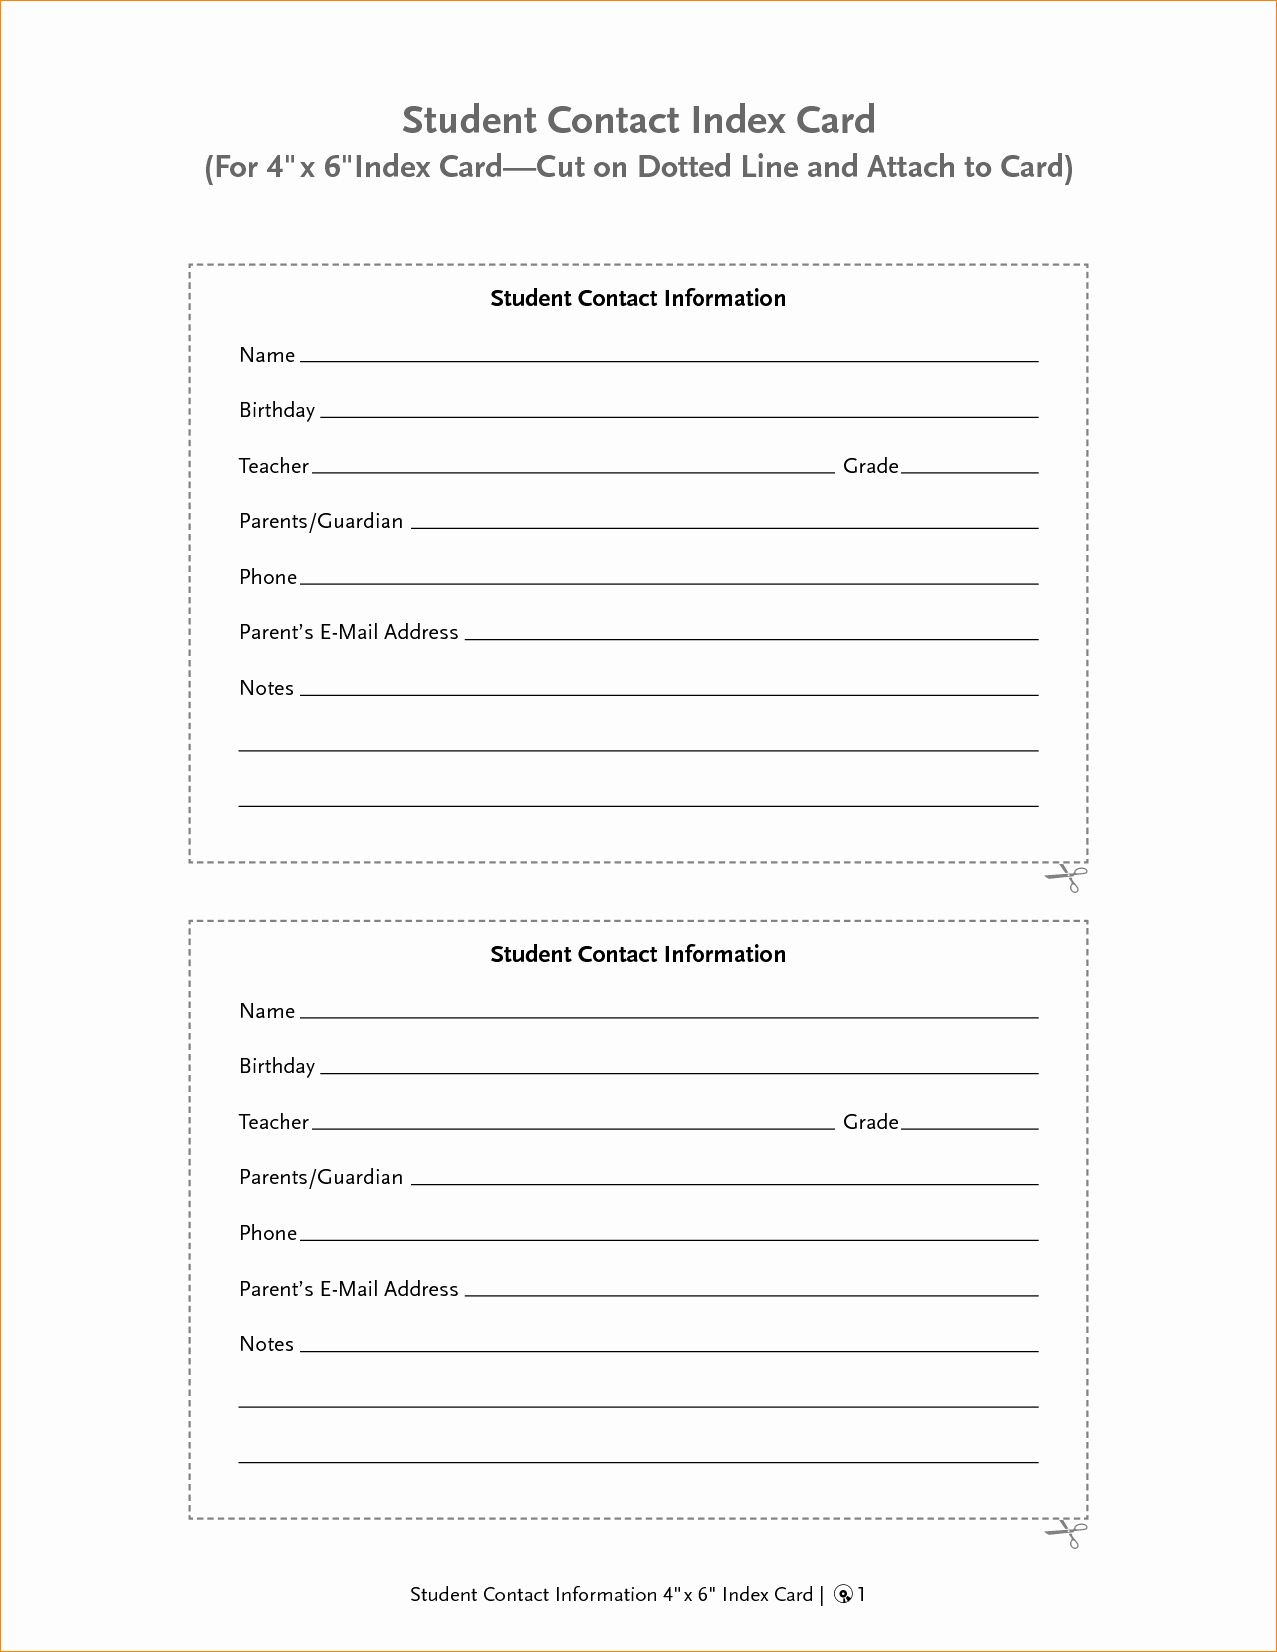 Contact Information Form Template Word Fresh Contact Information Form Template Portablegasgrillweber Contact Card Template Note Card Template Contact Card